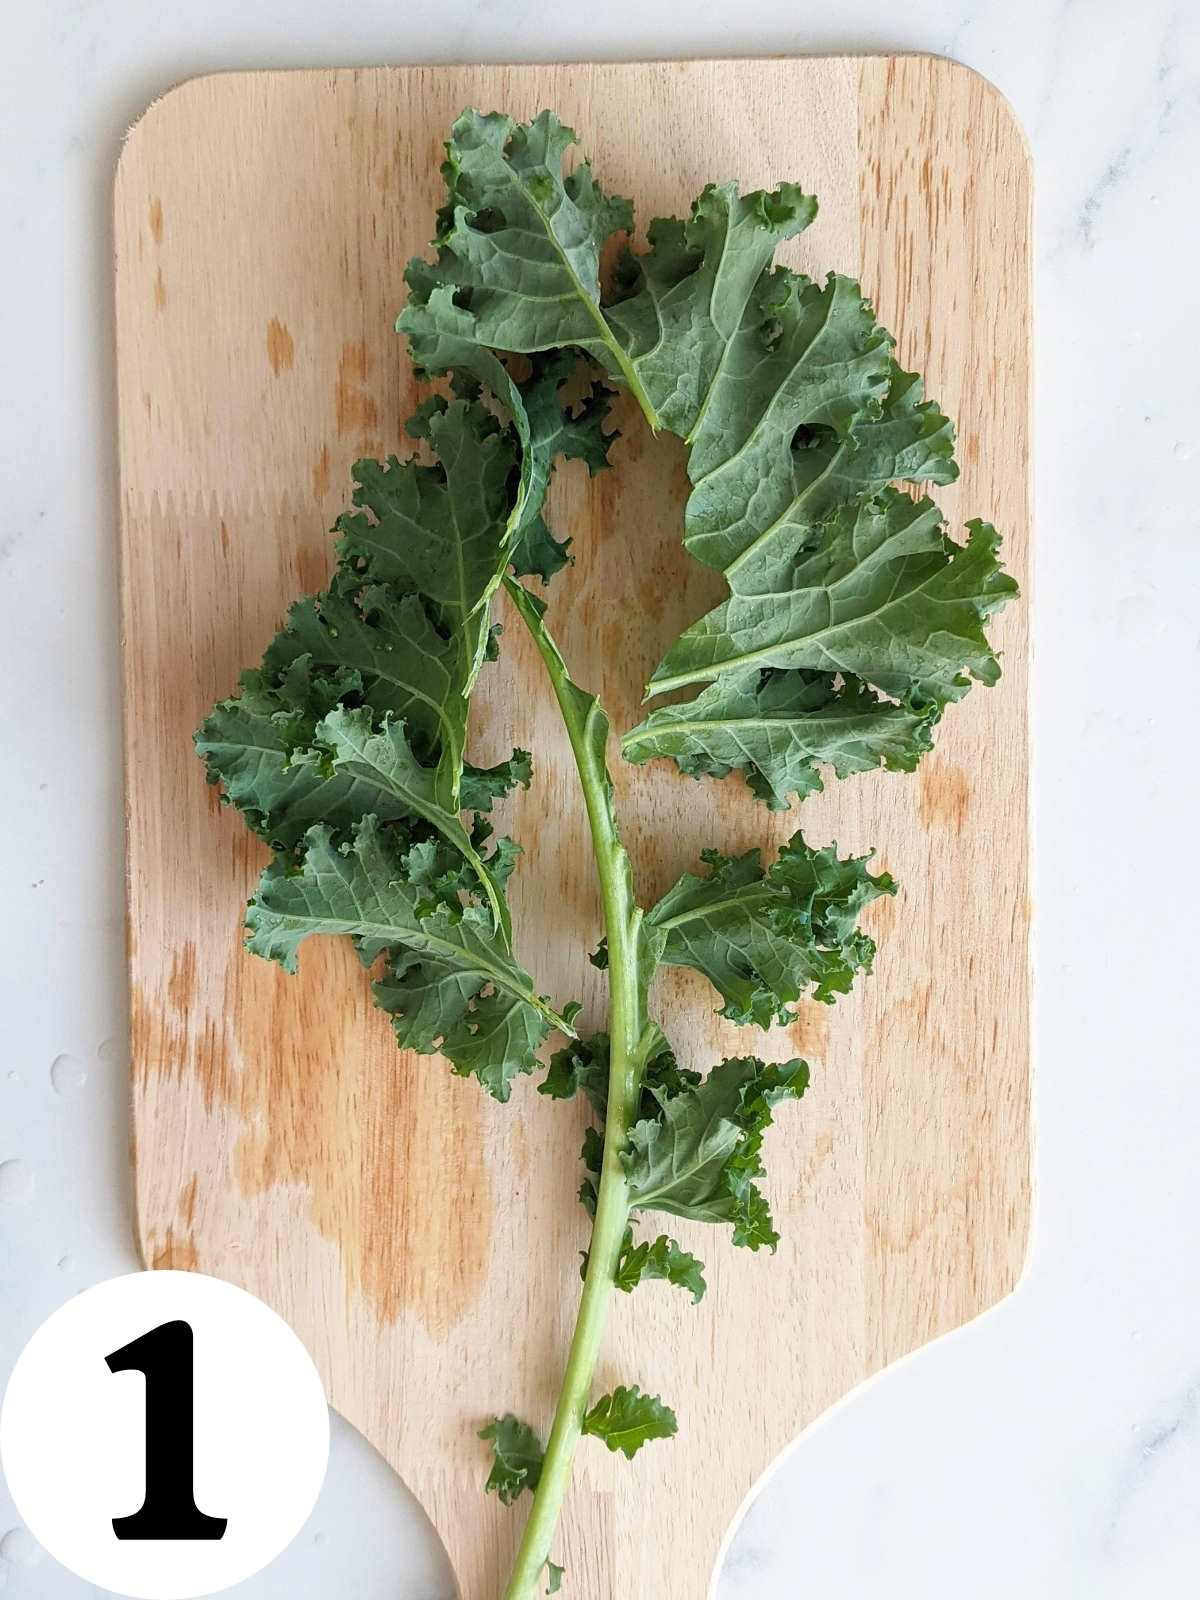 Kale leaf with the stem removed.